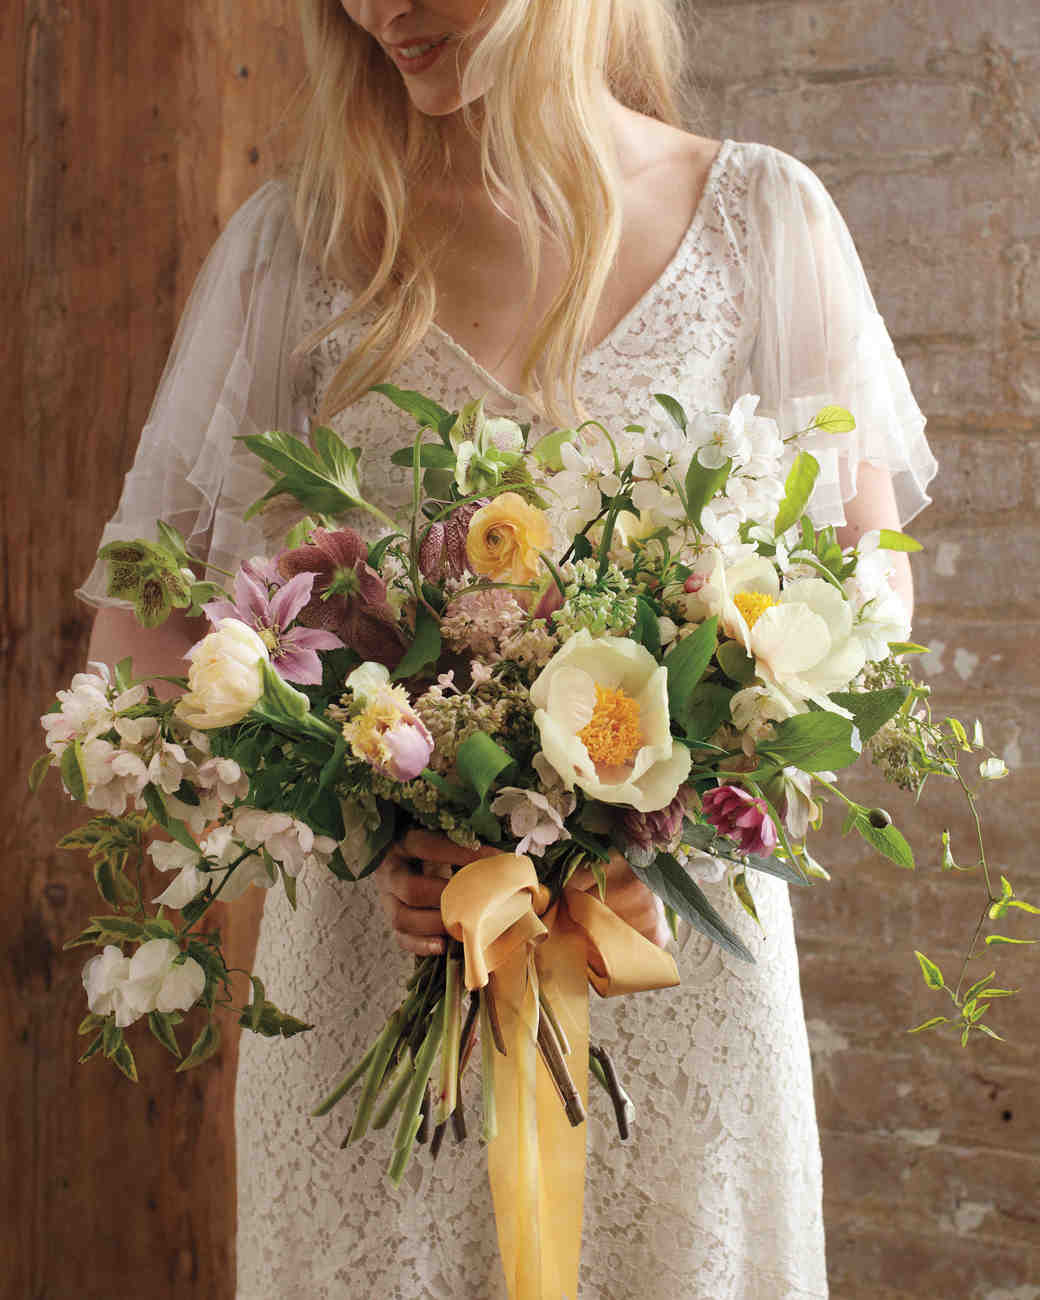 Wedding Bridal Flowers: Spring Wedding Flower Ideas From The Industry's Best